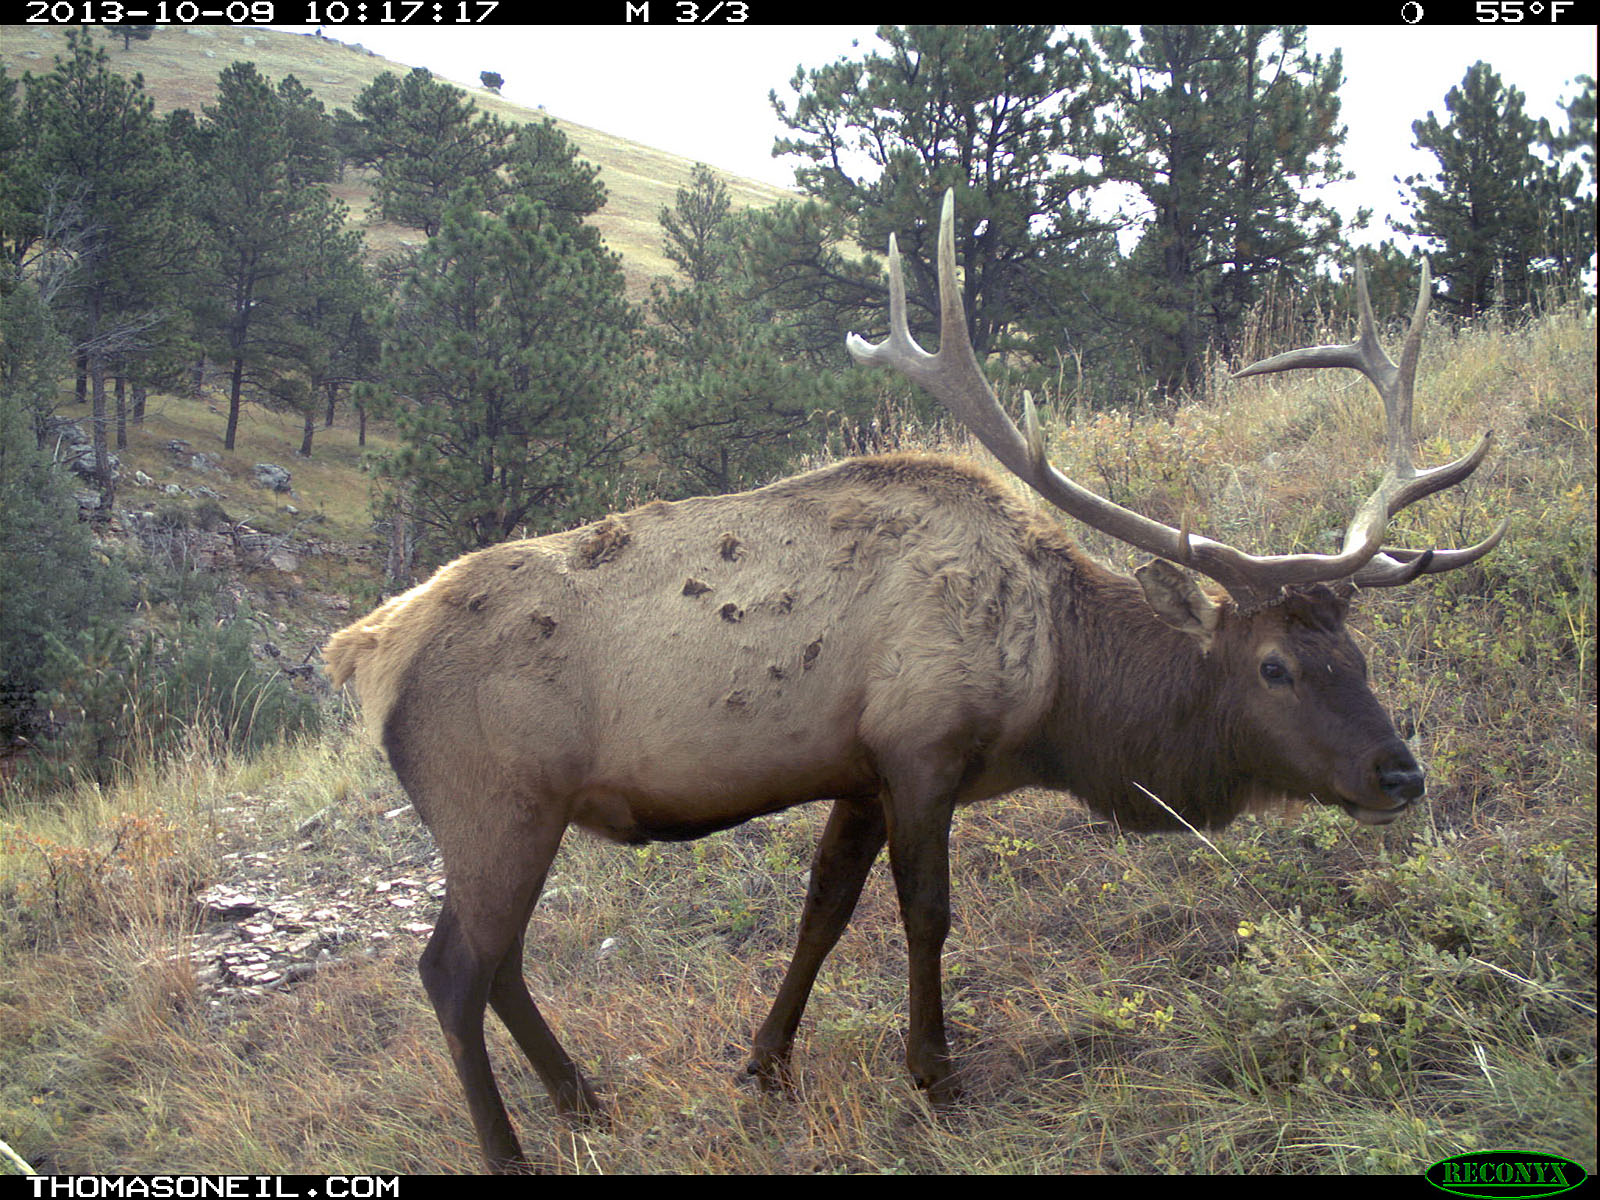 Elk on trail camera, Wind Cave National Park, South Dakota, Oct. 9, 2013.  Click for next photo.